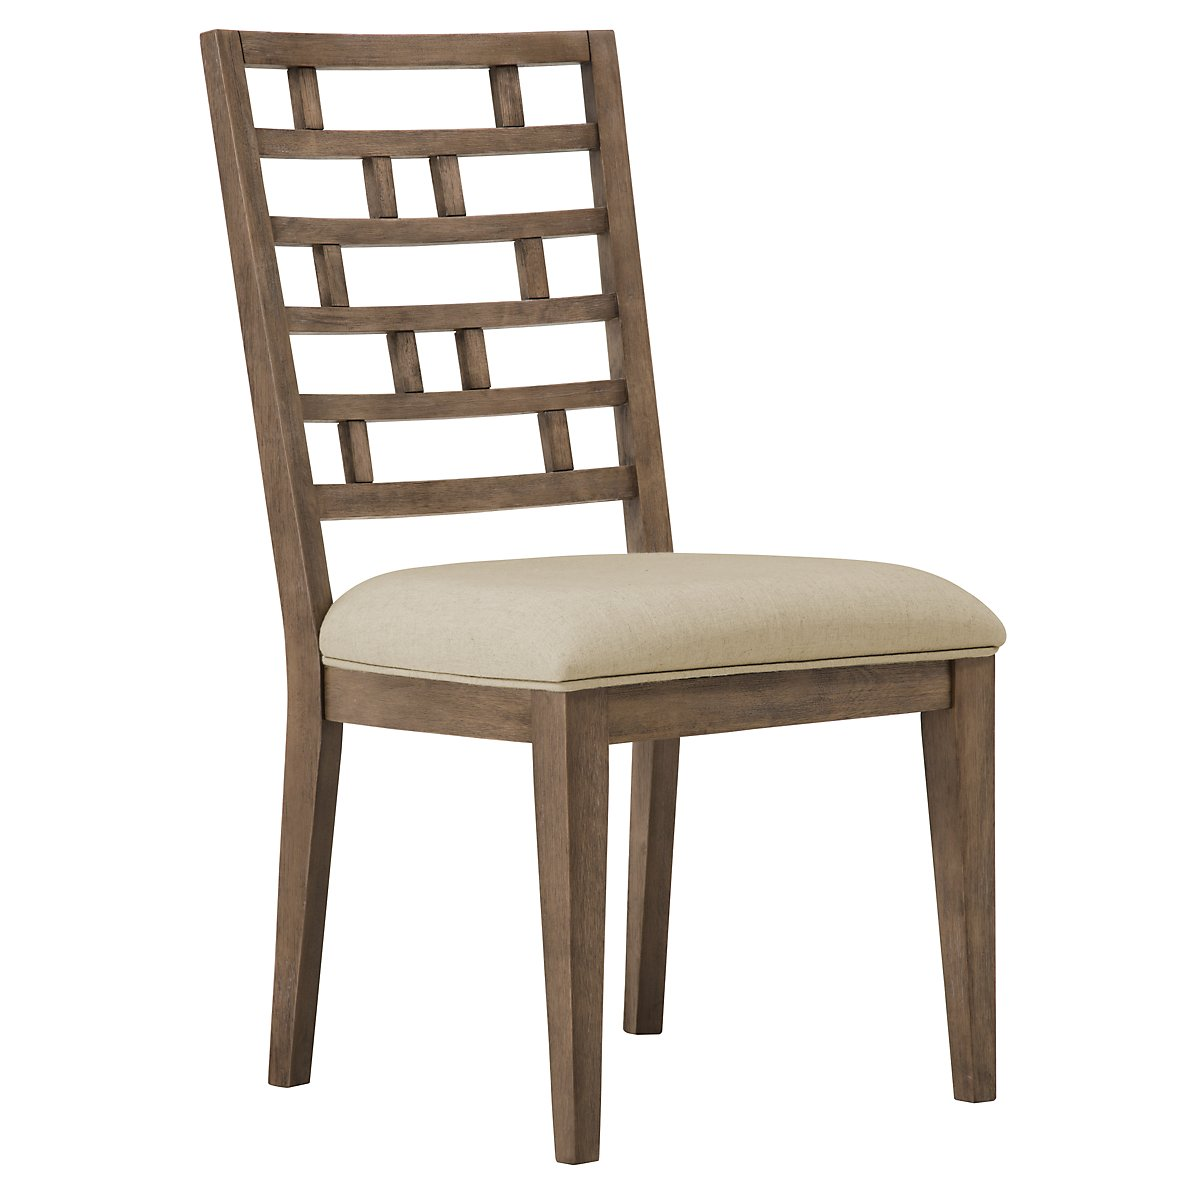 Mirabelle Light Tone Wood Side Chair